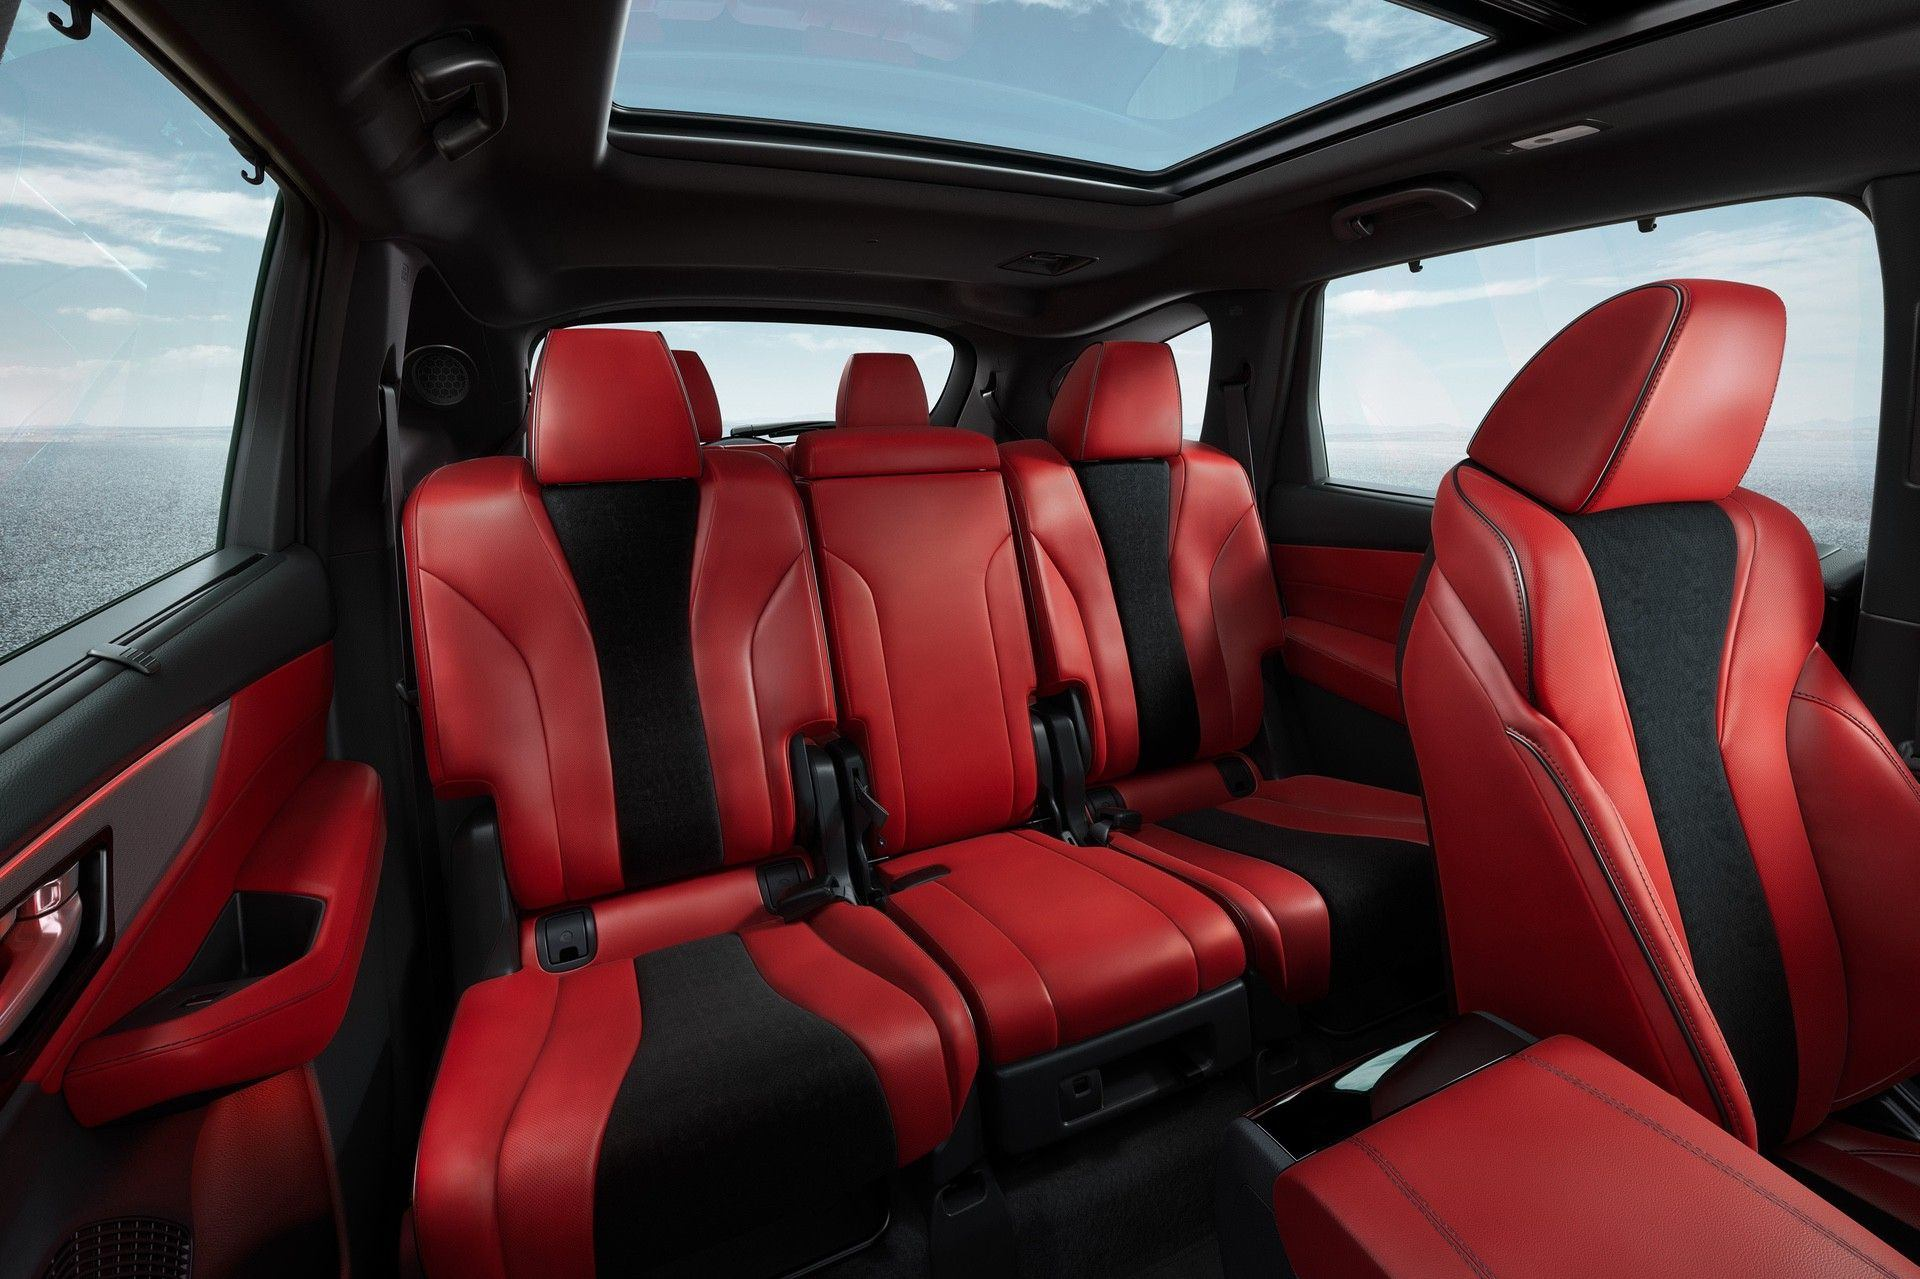 2022 SH-AWD A-Spec Red Interior Second Row Seats Interior Static